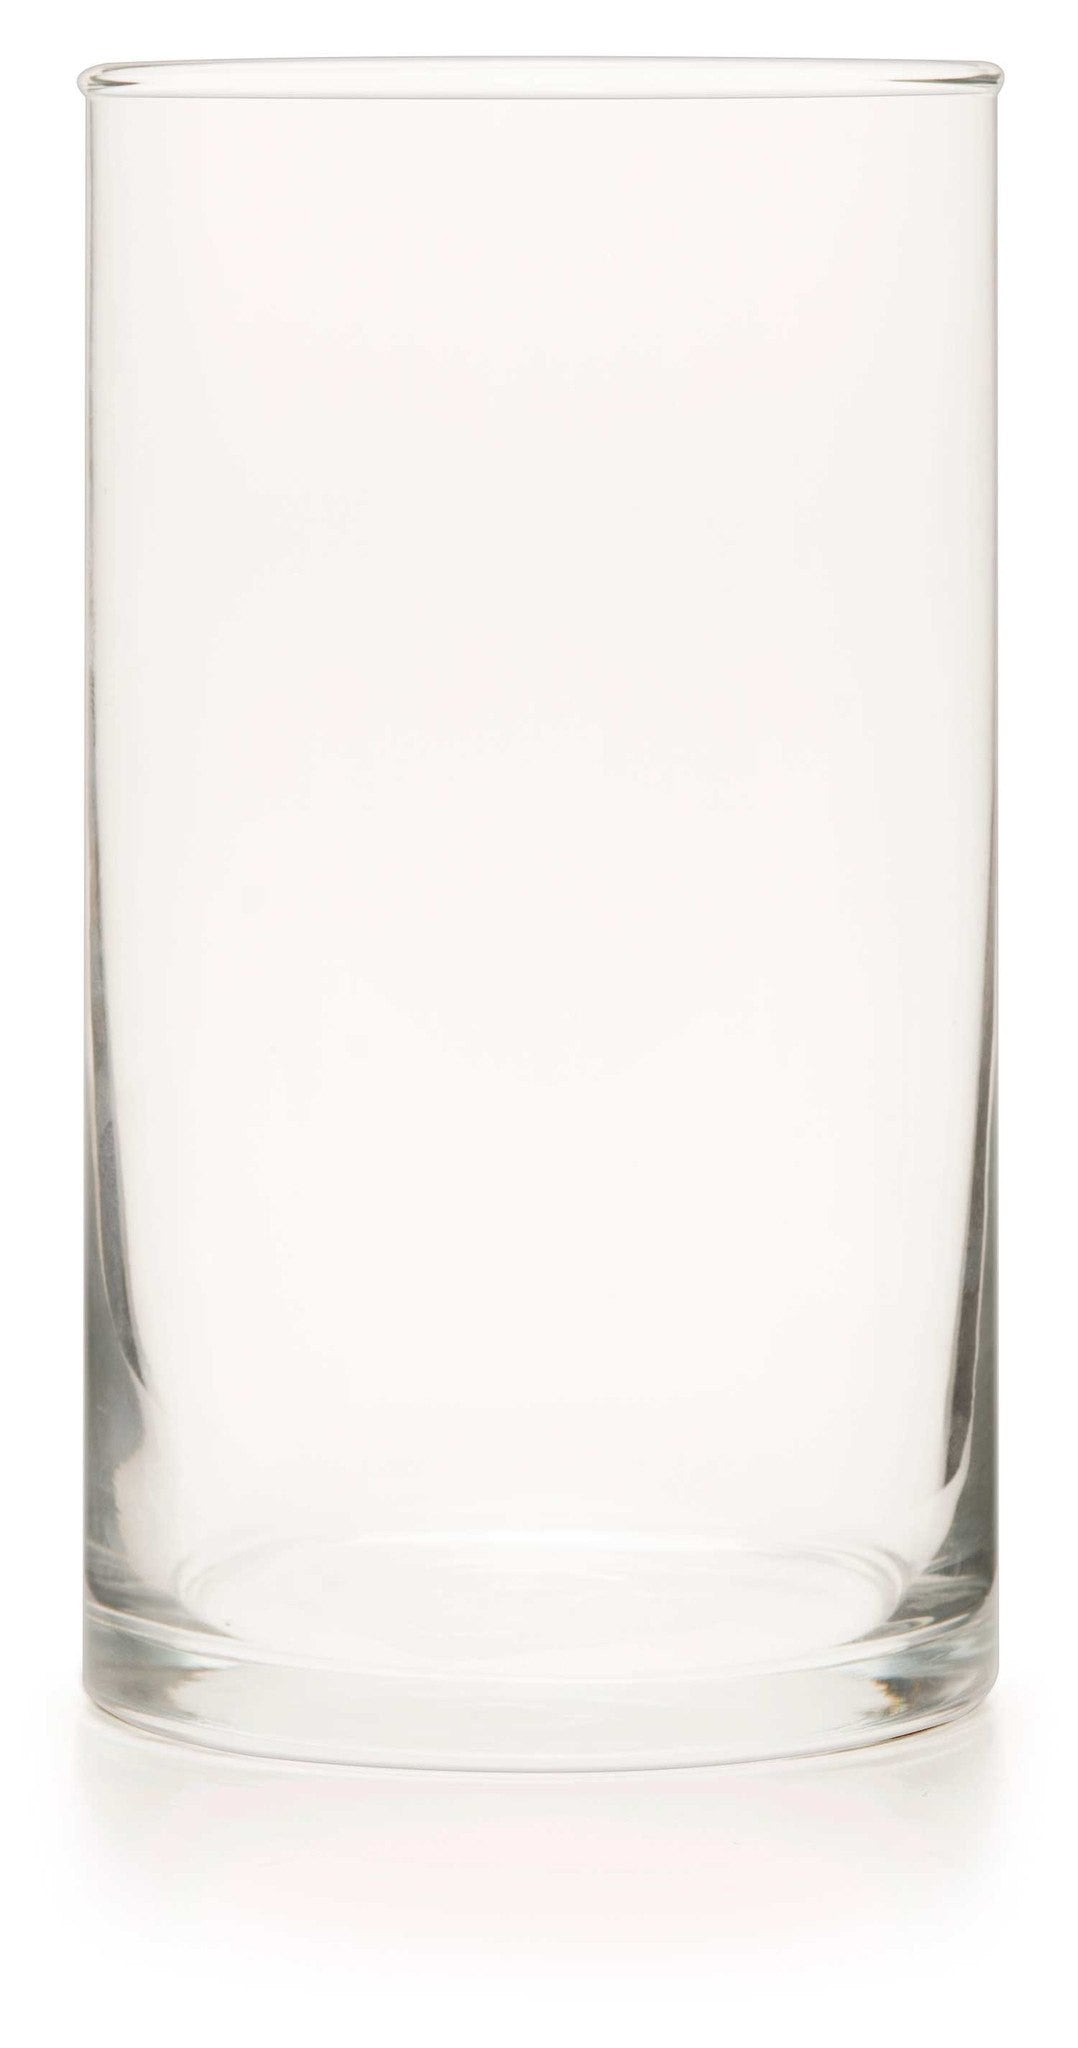 Clear Glass Cylinder Candle Holder Candle Holders Candlemart.com $ 2.00